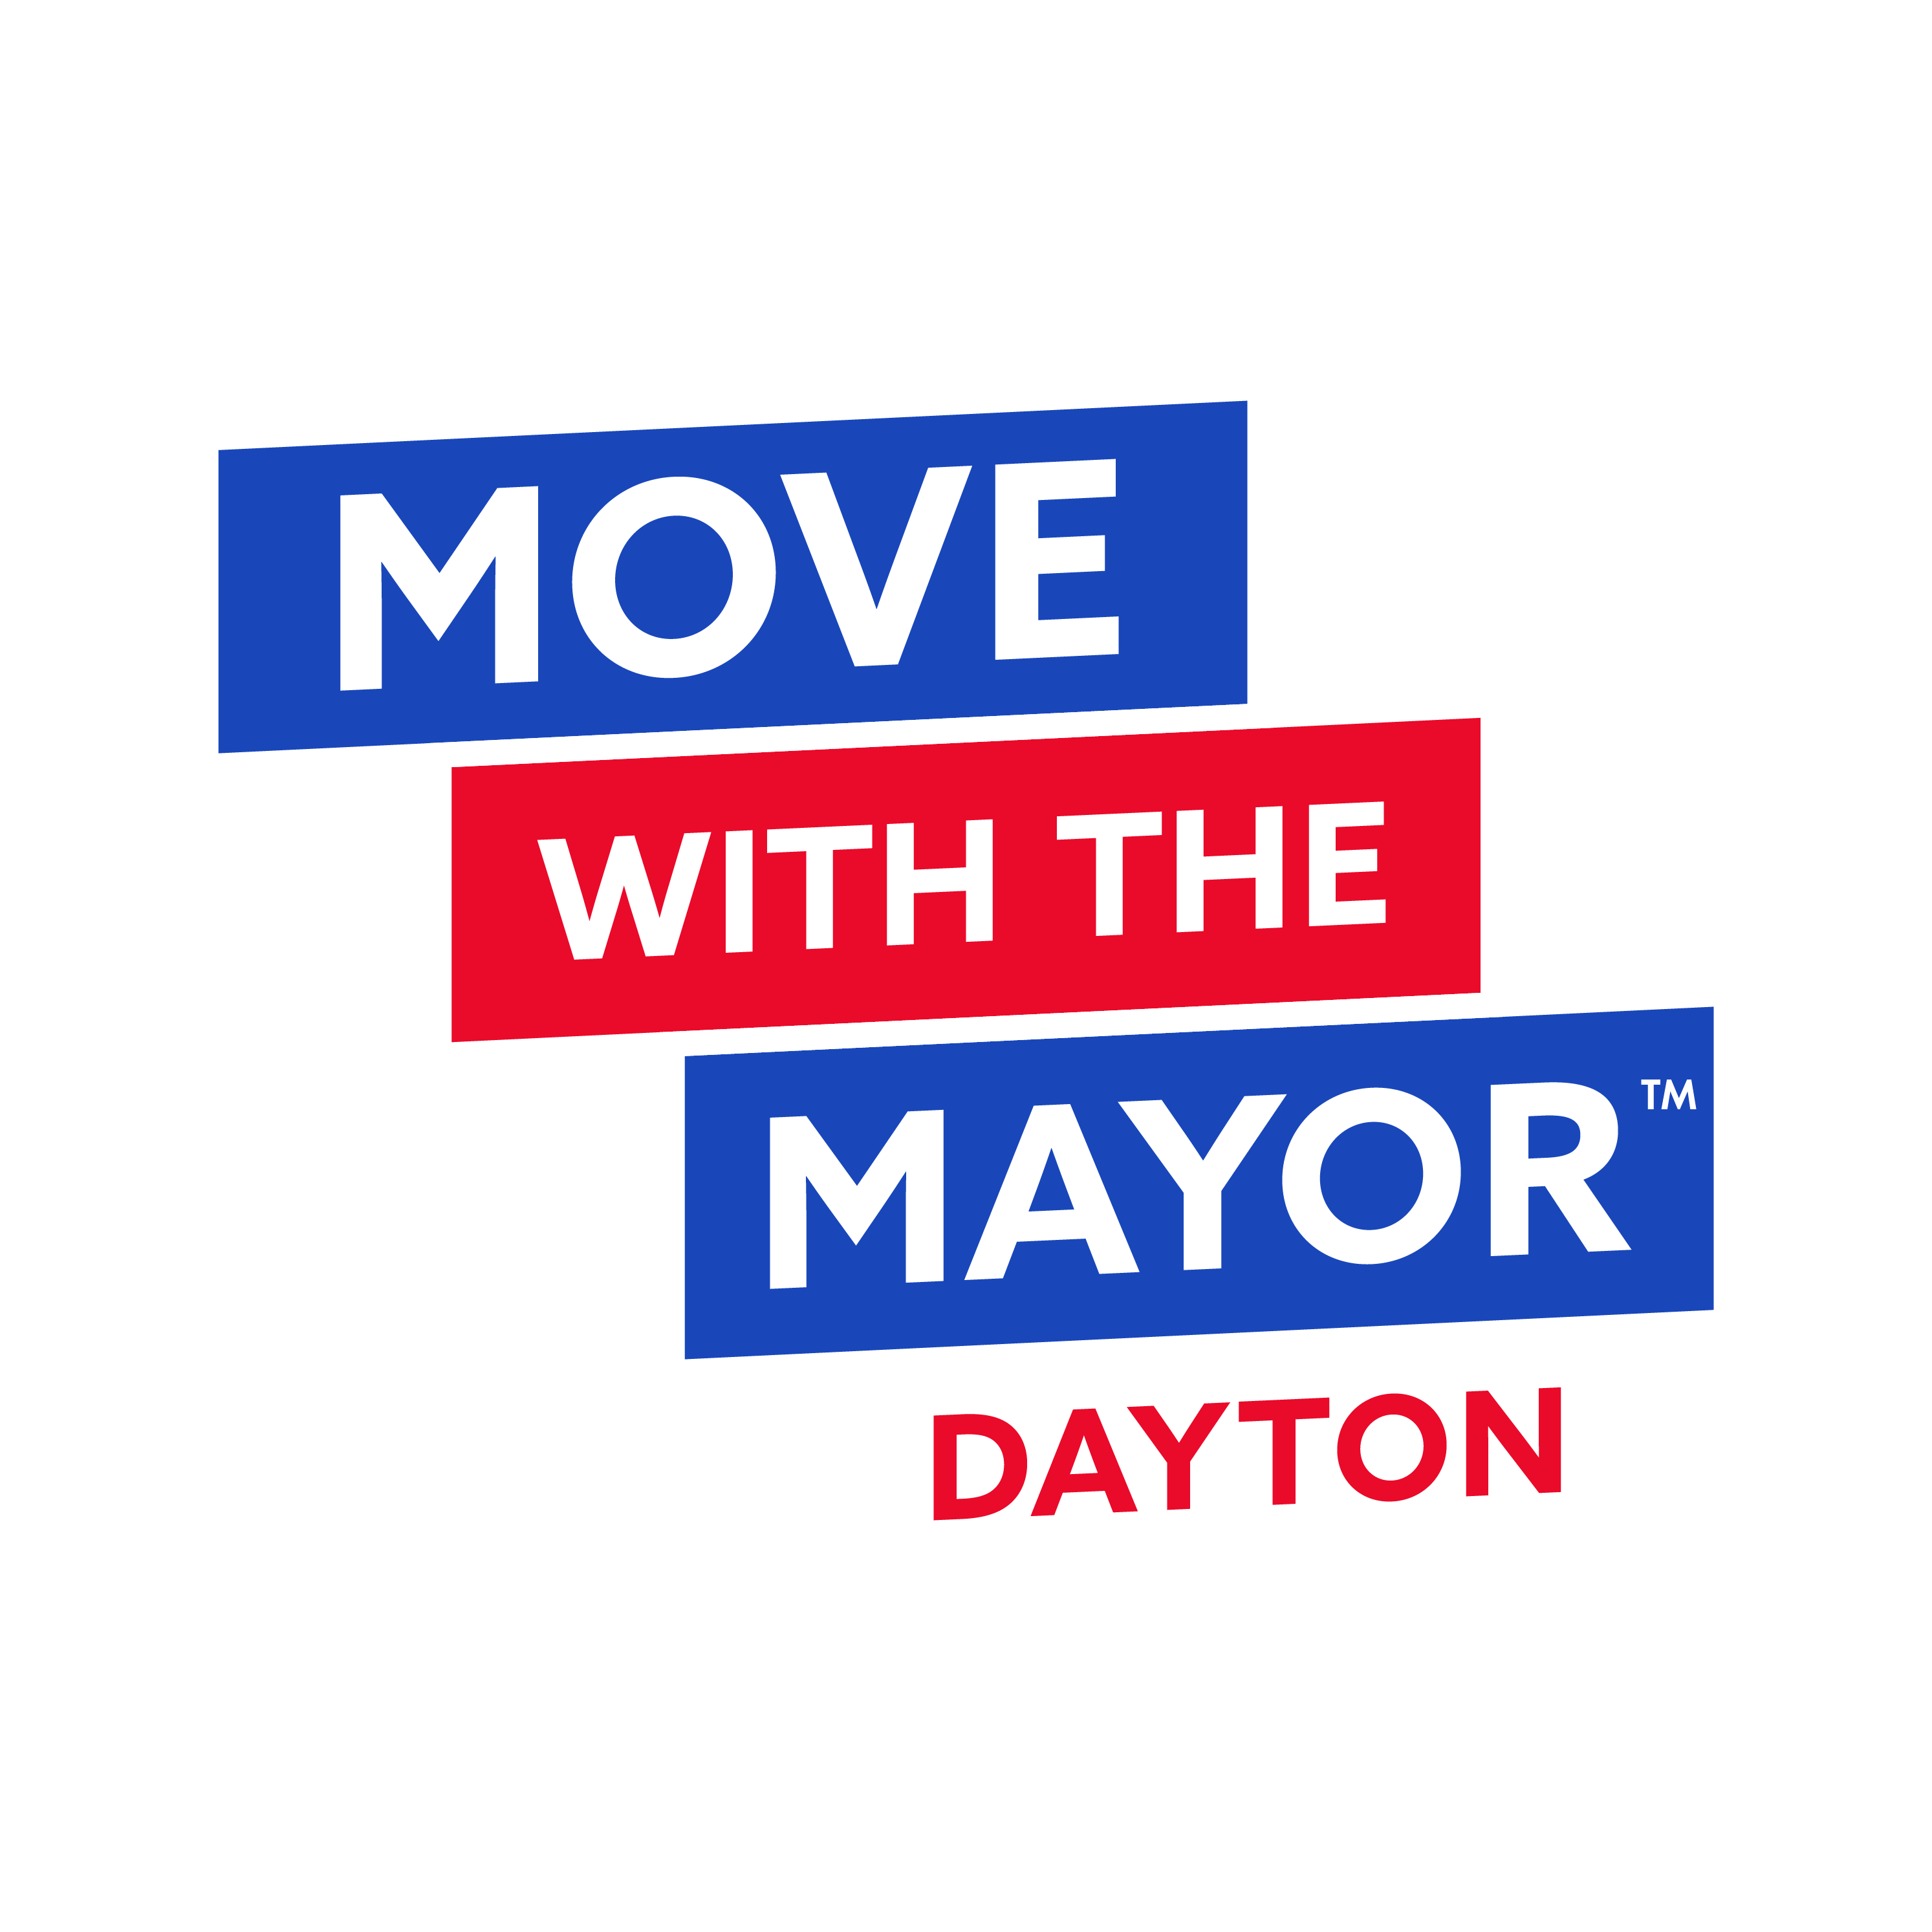 Move with the Mayor